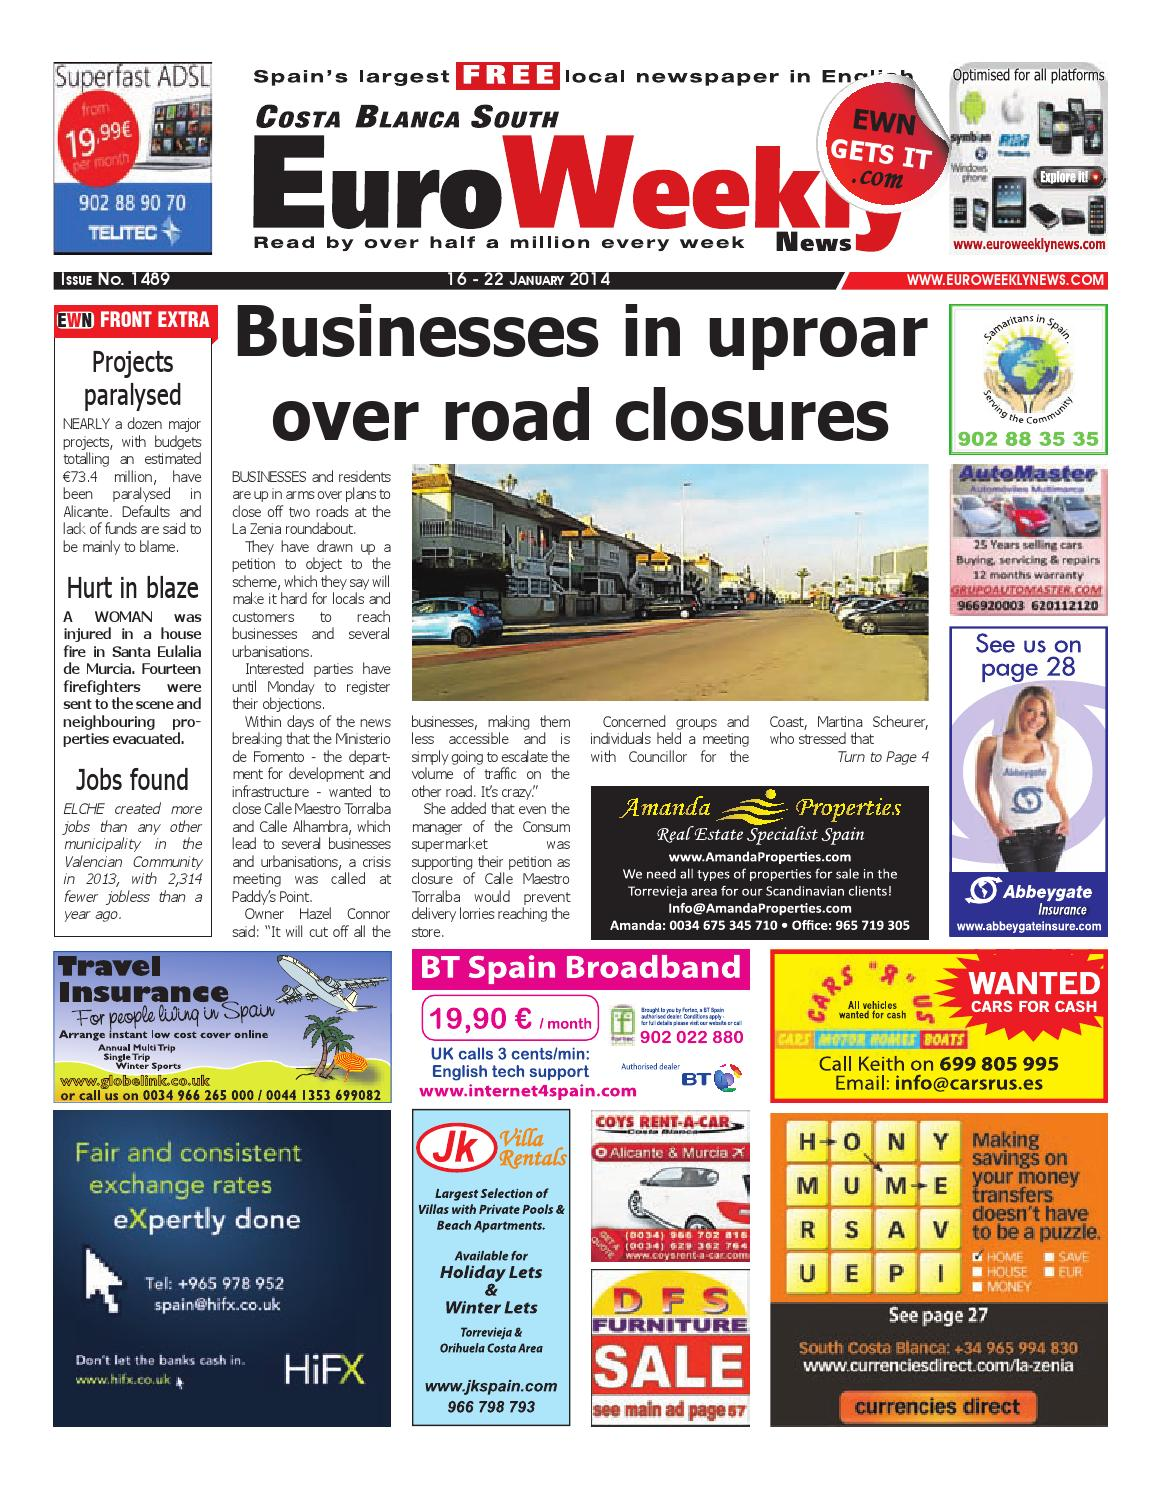 Euro Weekly News - Costa Blanca South 16 - 22 January 2014 Issue 1489 by  Euro Weekly News Media S.A. - issuu 02bc584d31b2